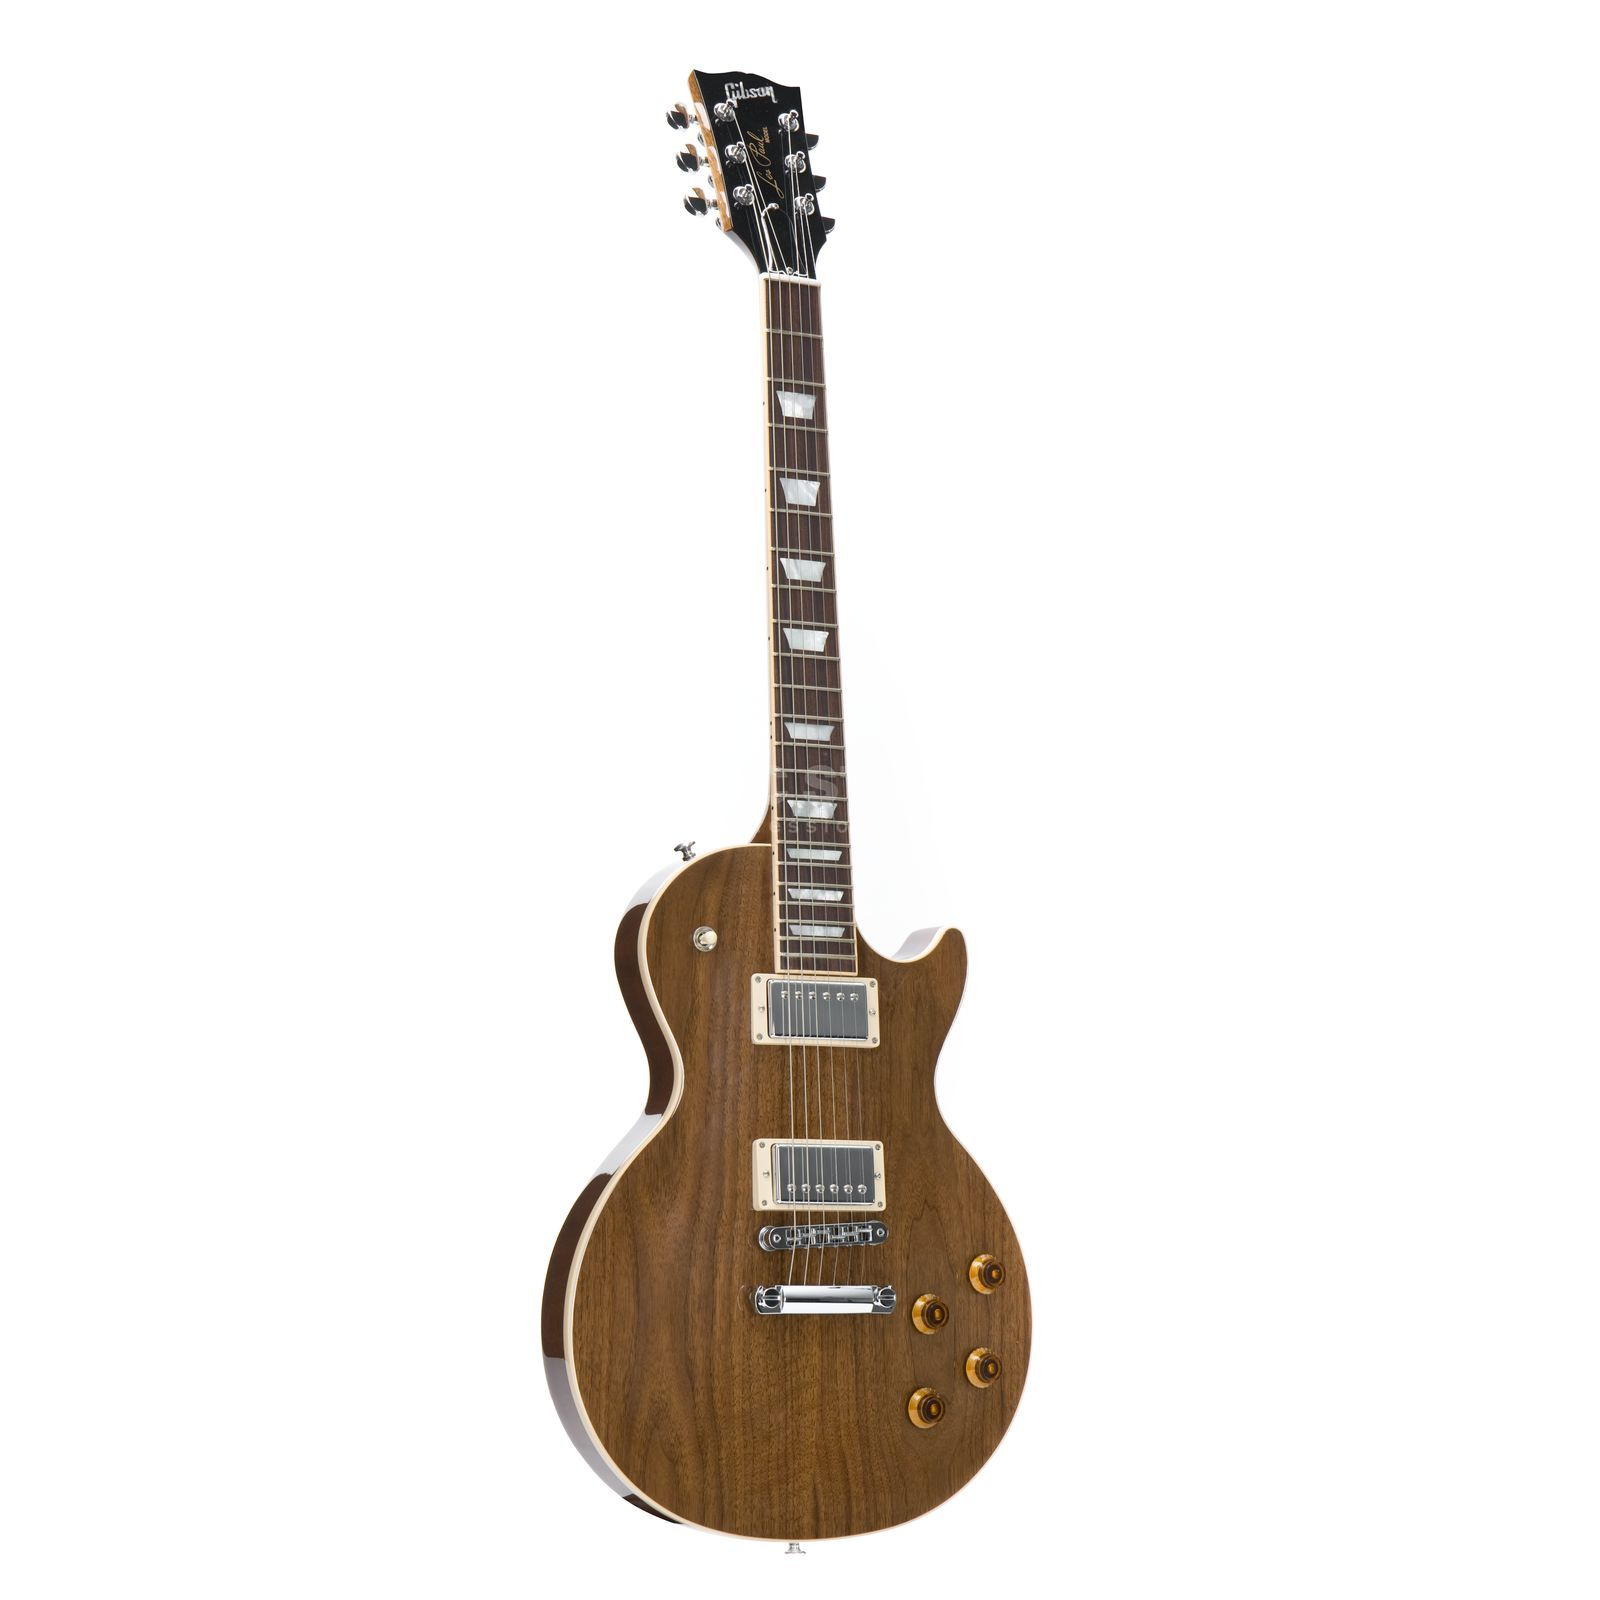 Gibson Les Paul Standard Figured Walnut Limited Image du produit